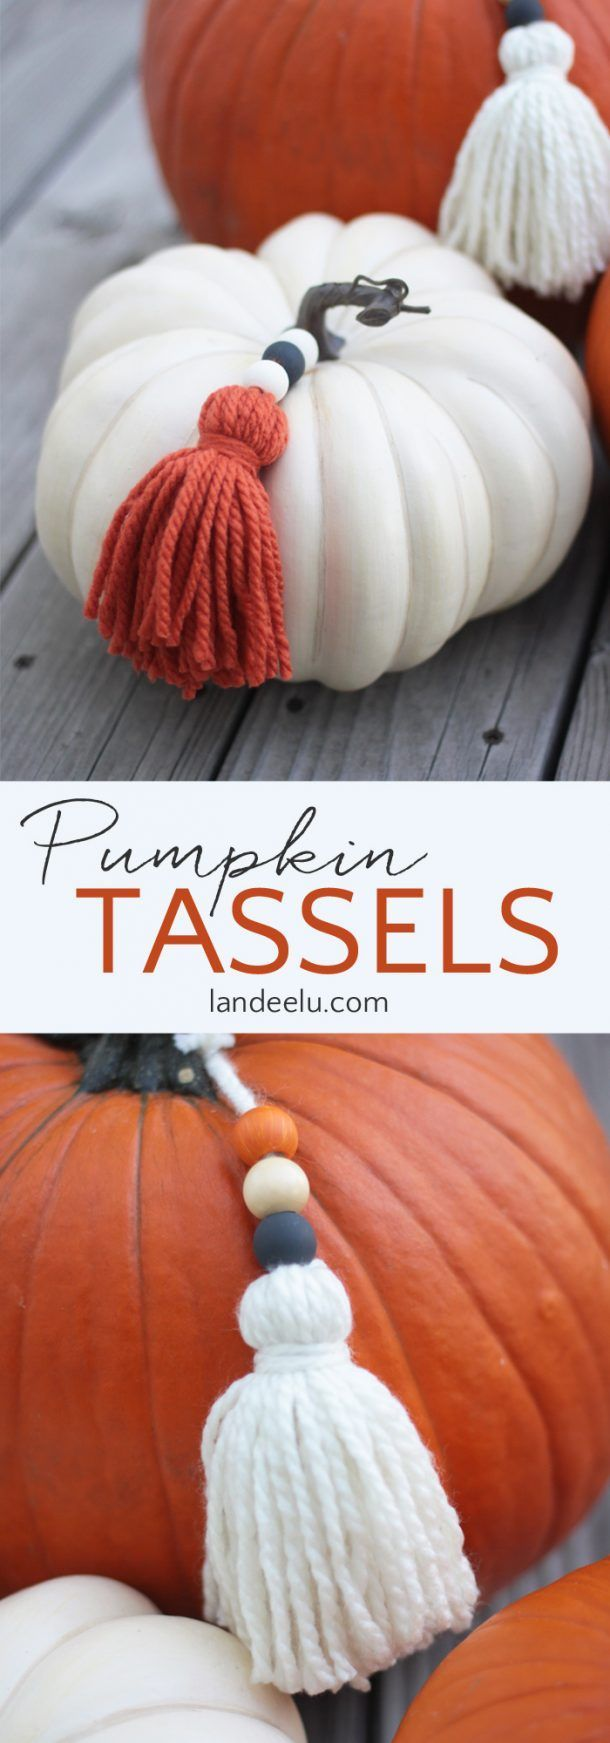 Make some trendy DIY yarn tassels and paint some wood beads to add to your pumpk...